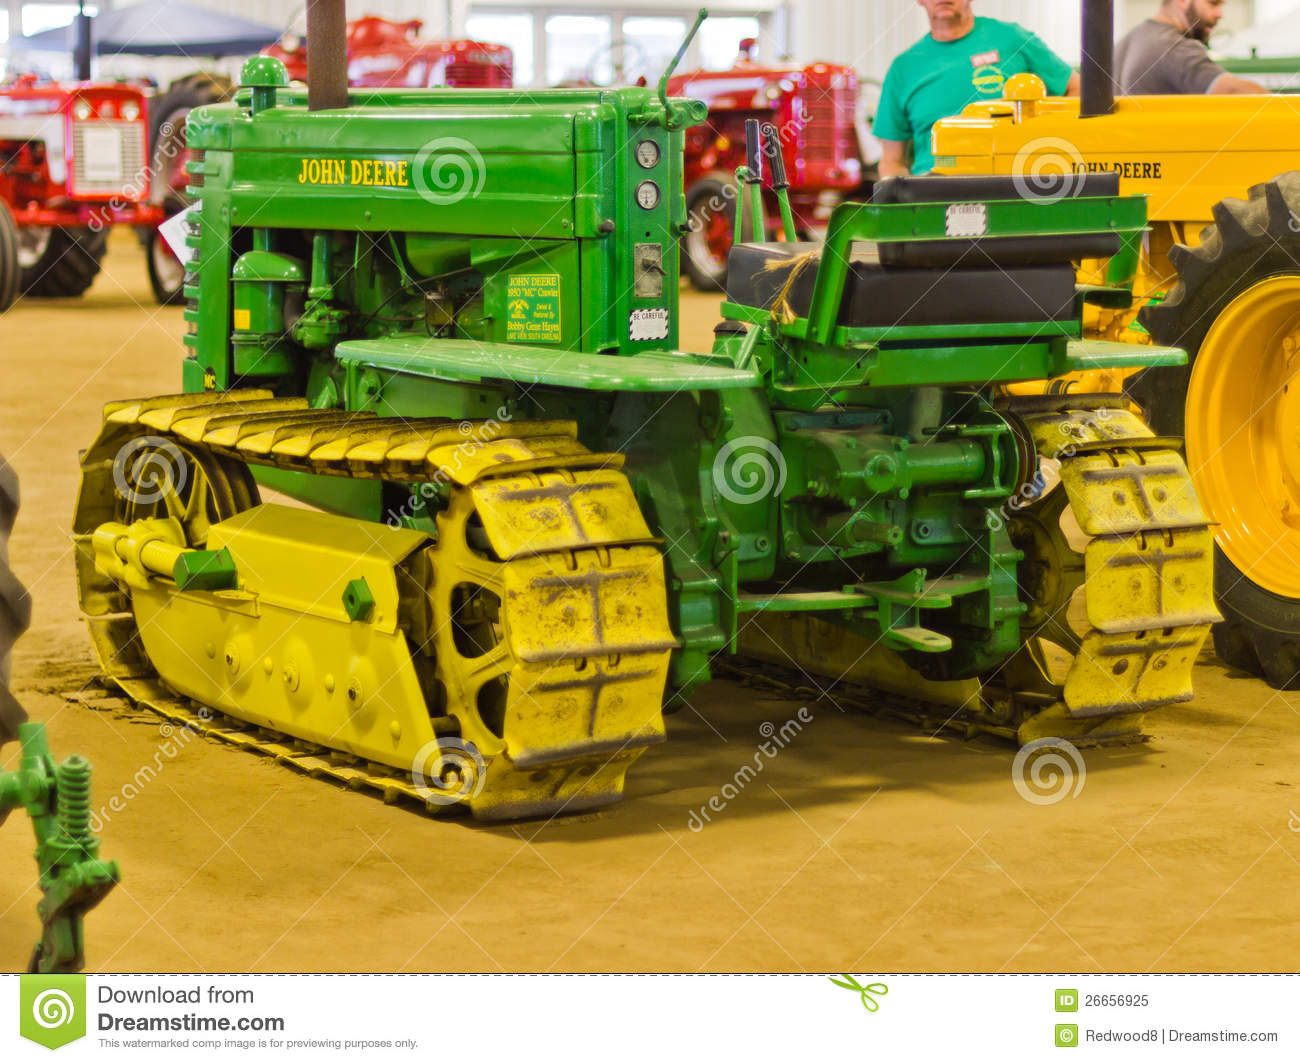 Old Antique Jd Crawlers : John deere crawler tractor editorial image of